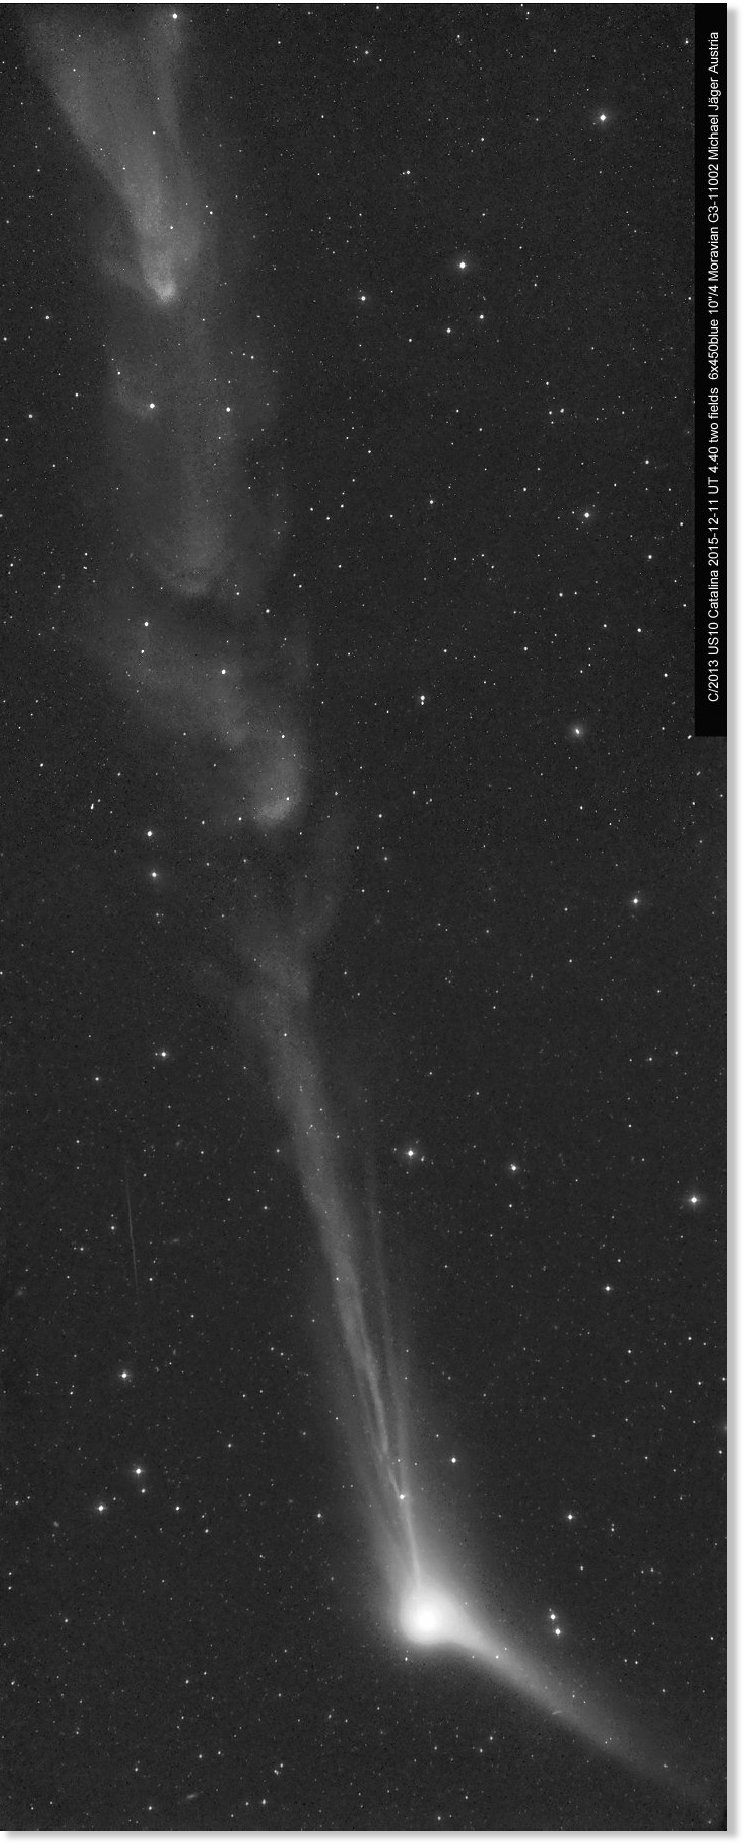 spaceweathercom news and information about meteor - 512×1180